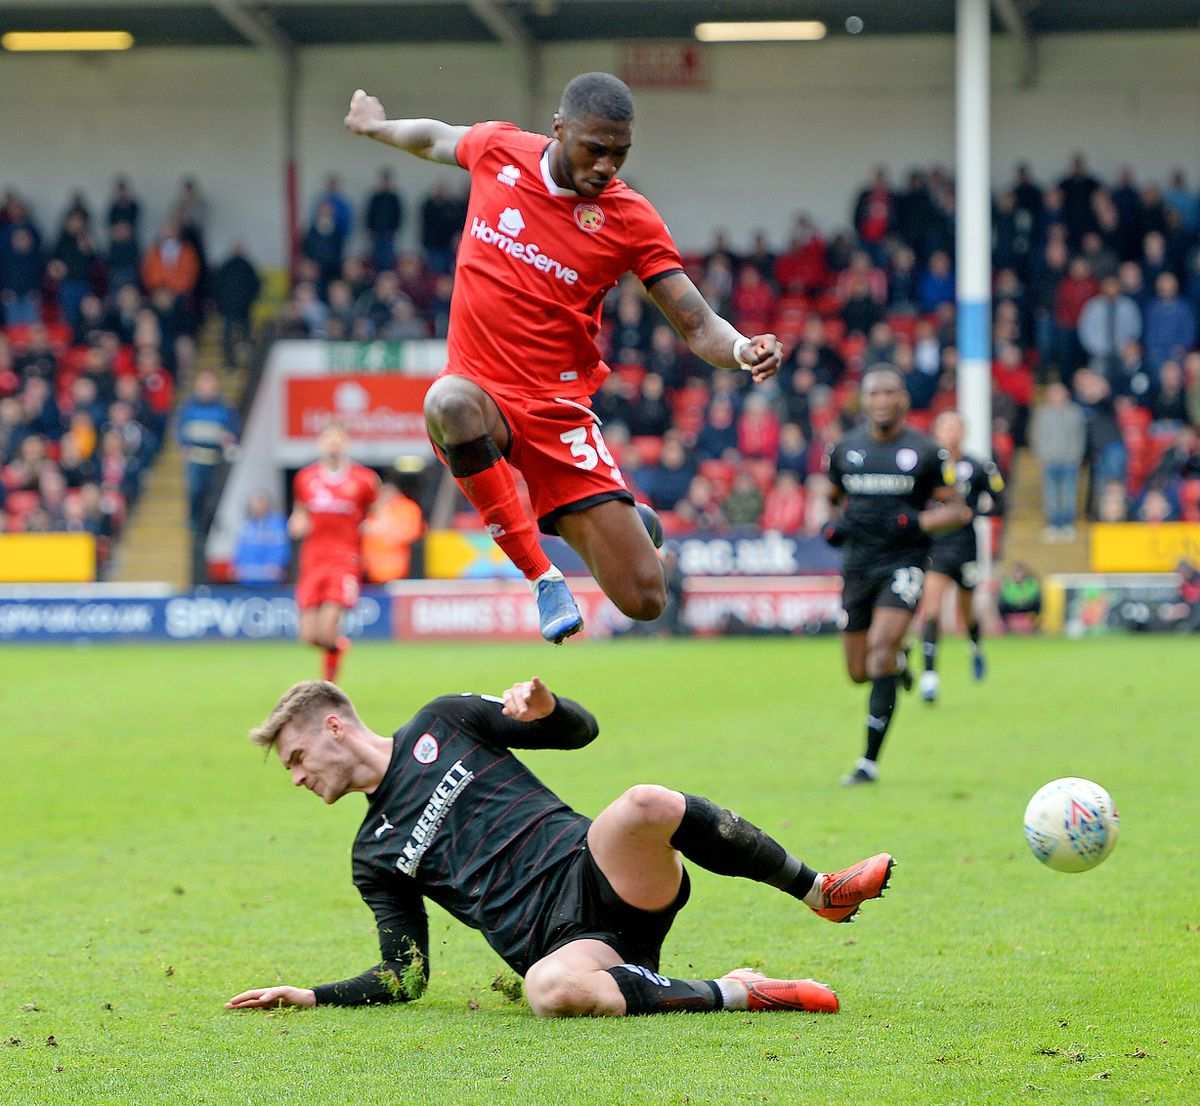 Blackett-Taylor wants to be ruthless